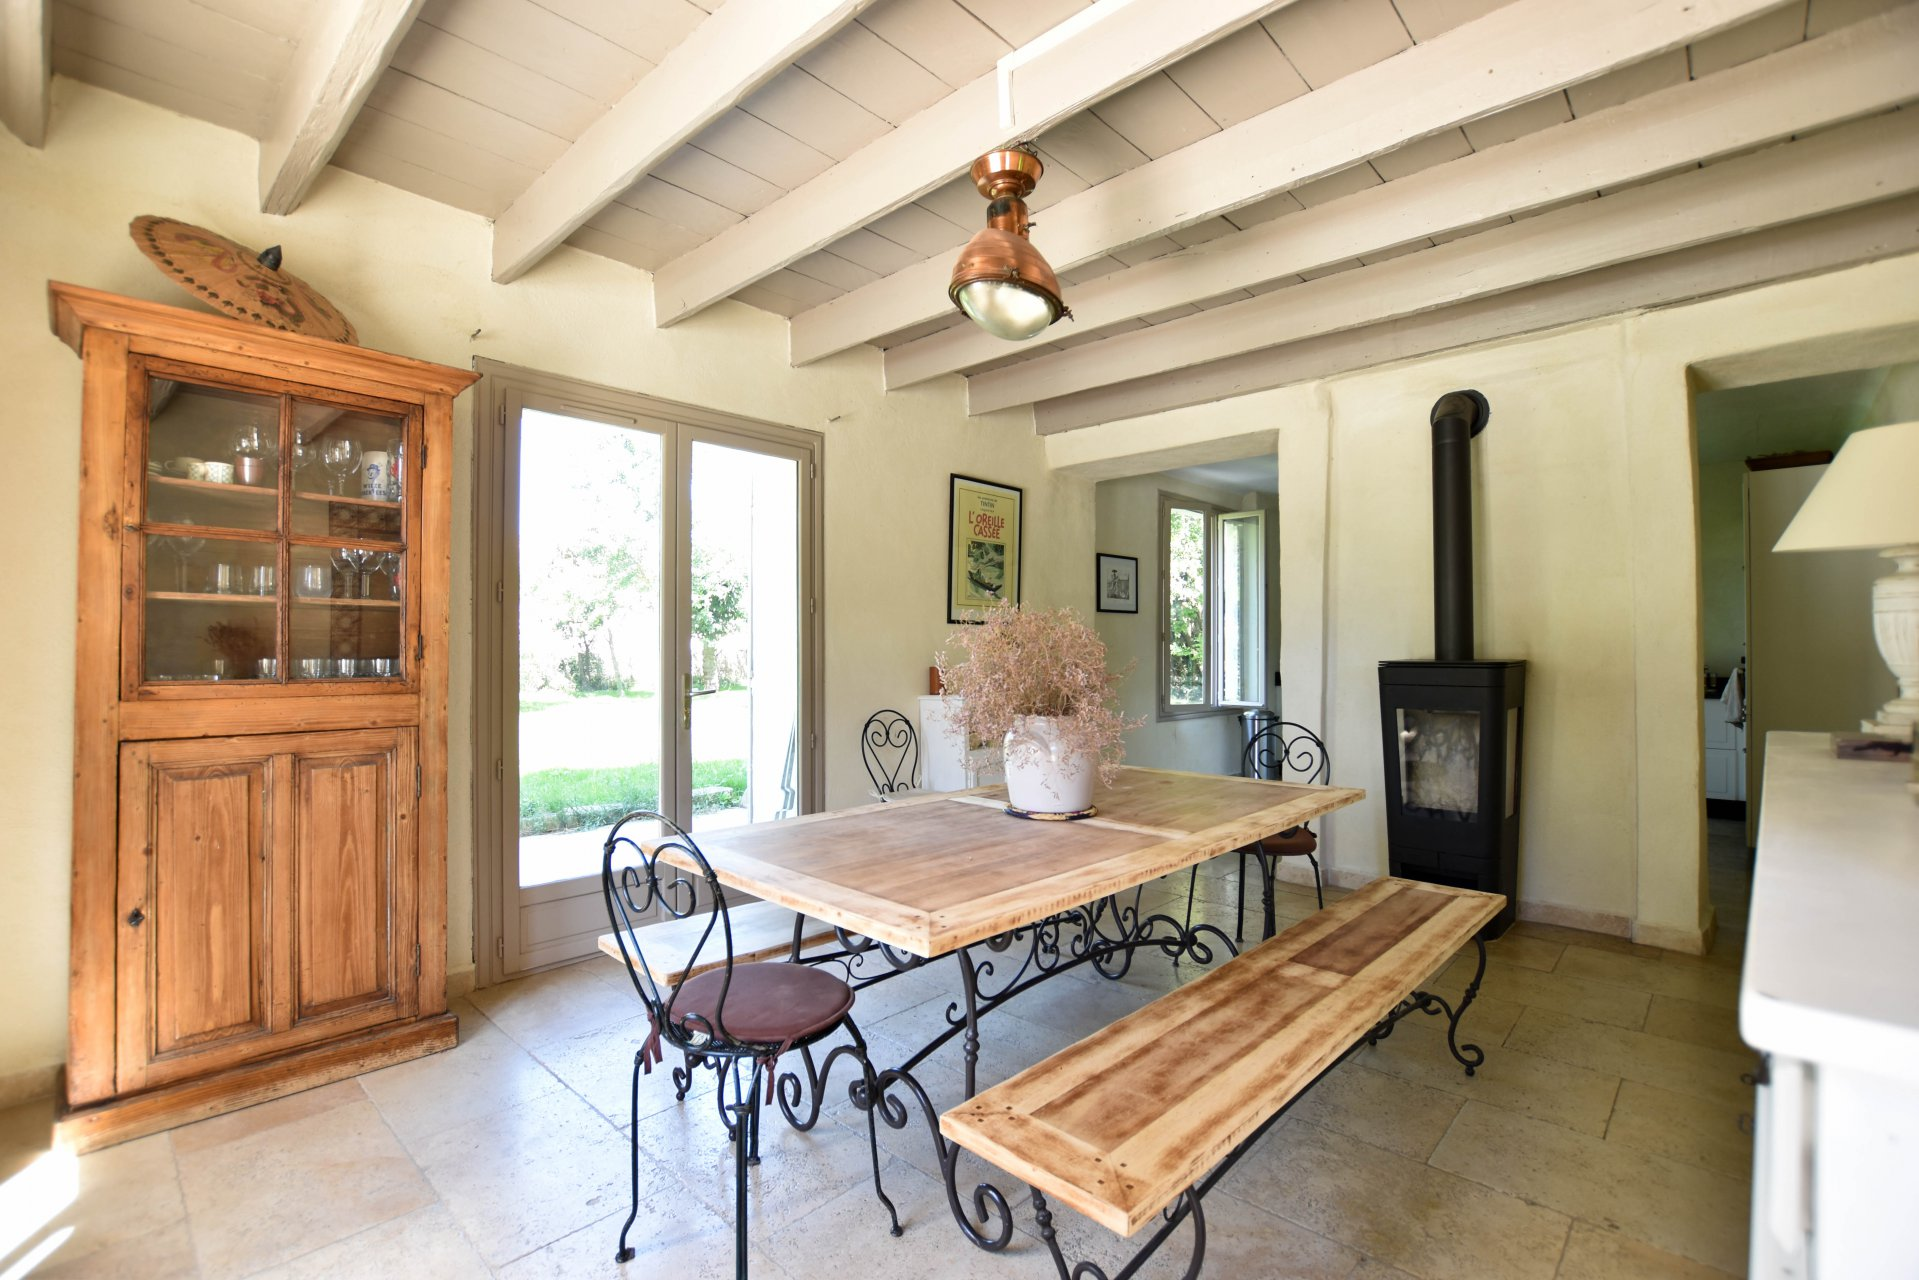 For sale - Renovated 4 bedroom farmhouse close to Arles and Alpilles